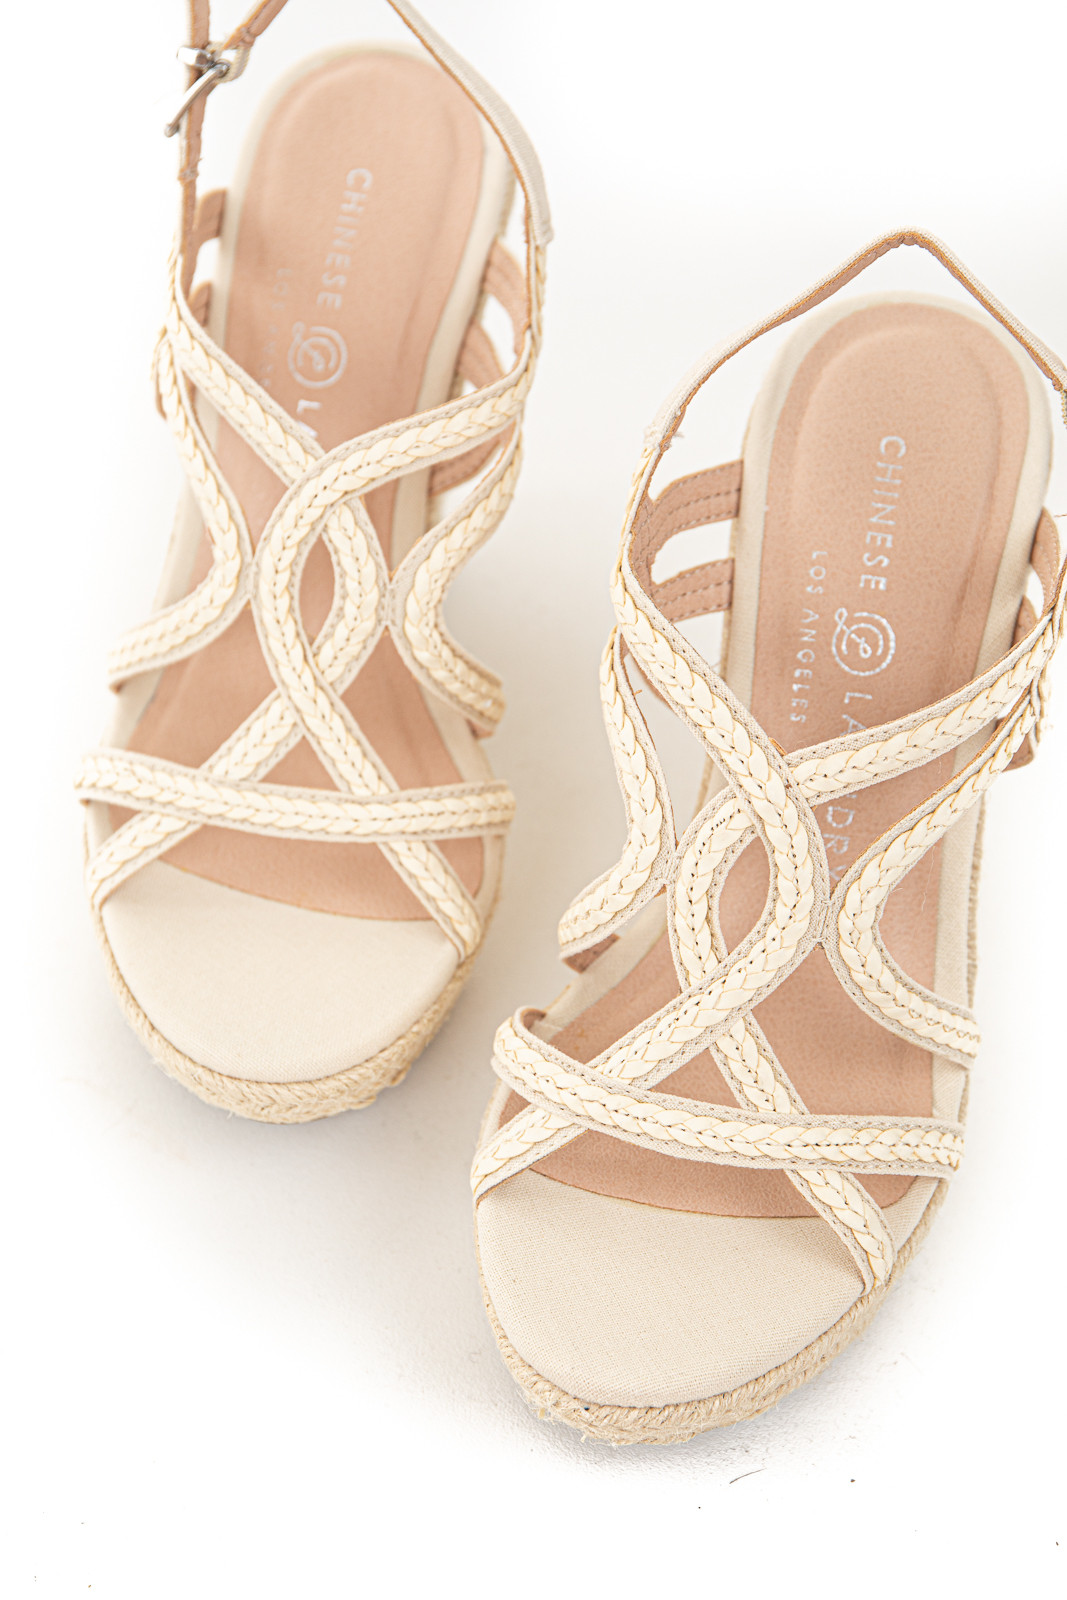 Cream Strappy Braided Espadrile Wedges with Silver Buckle